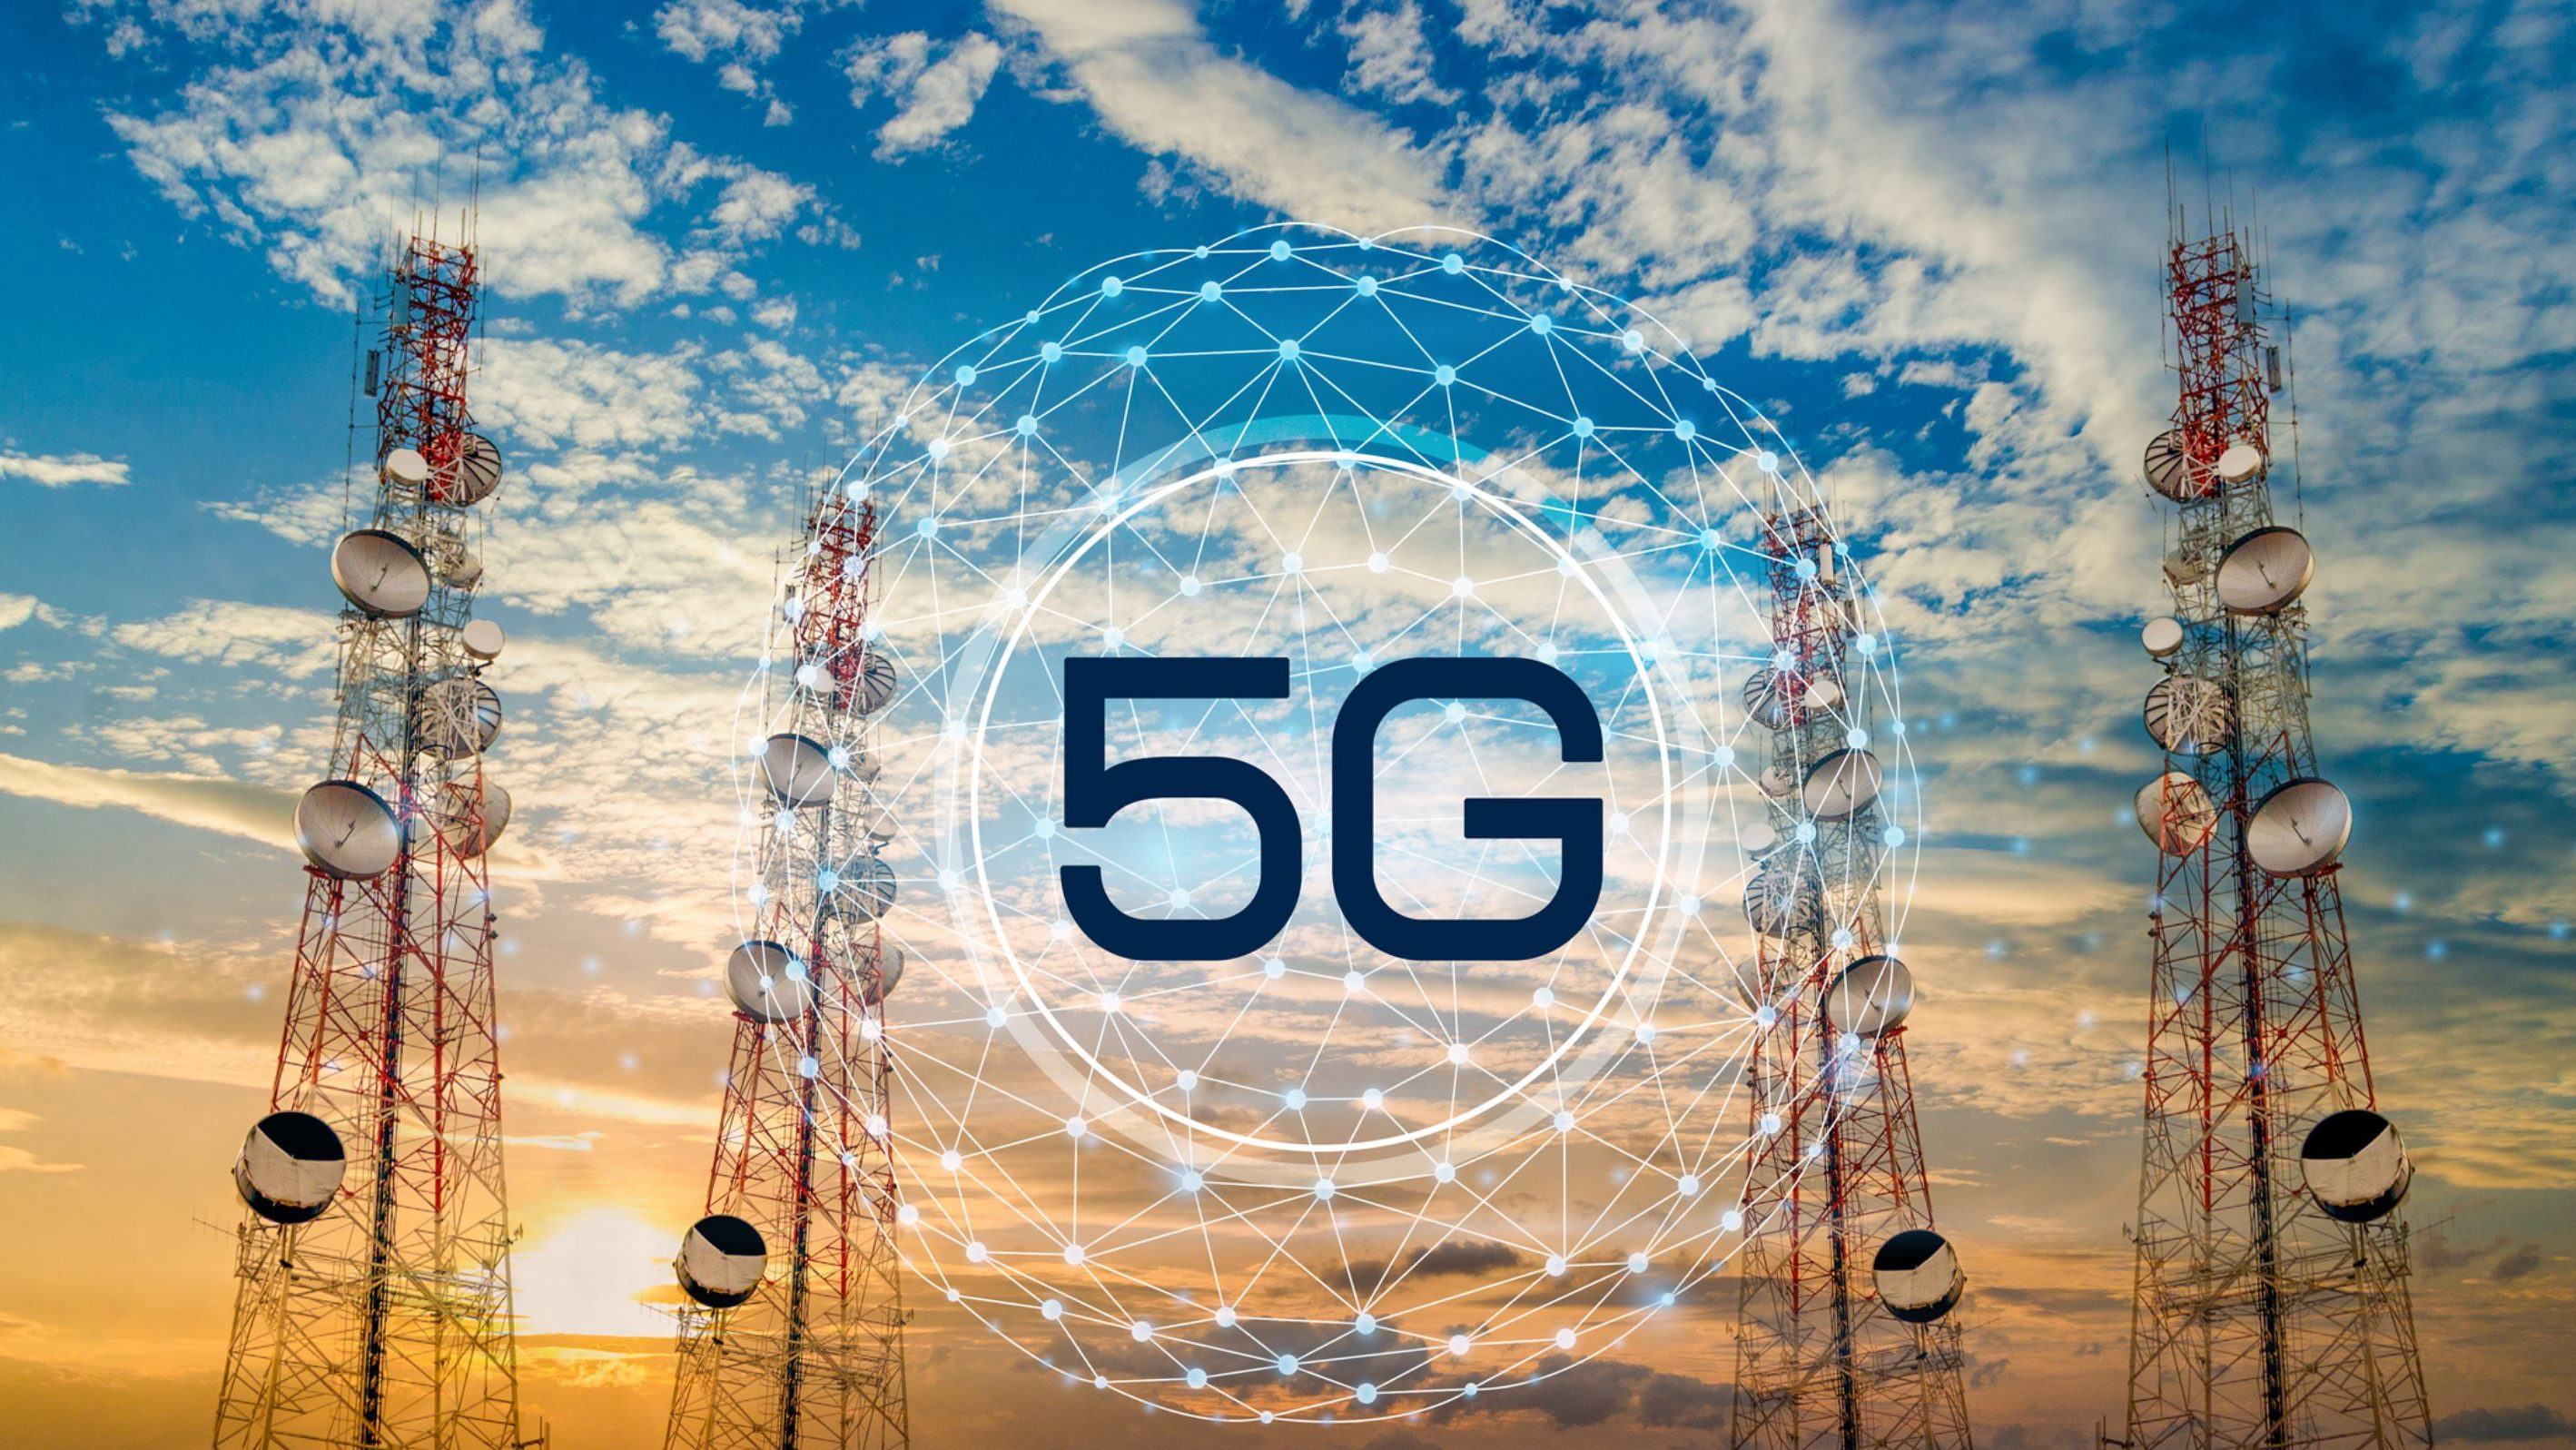 5G Technology: Does it pose health risks?